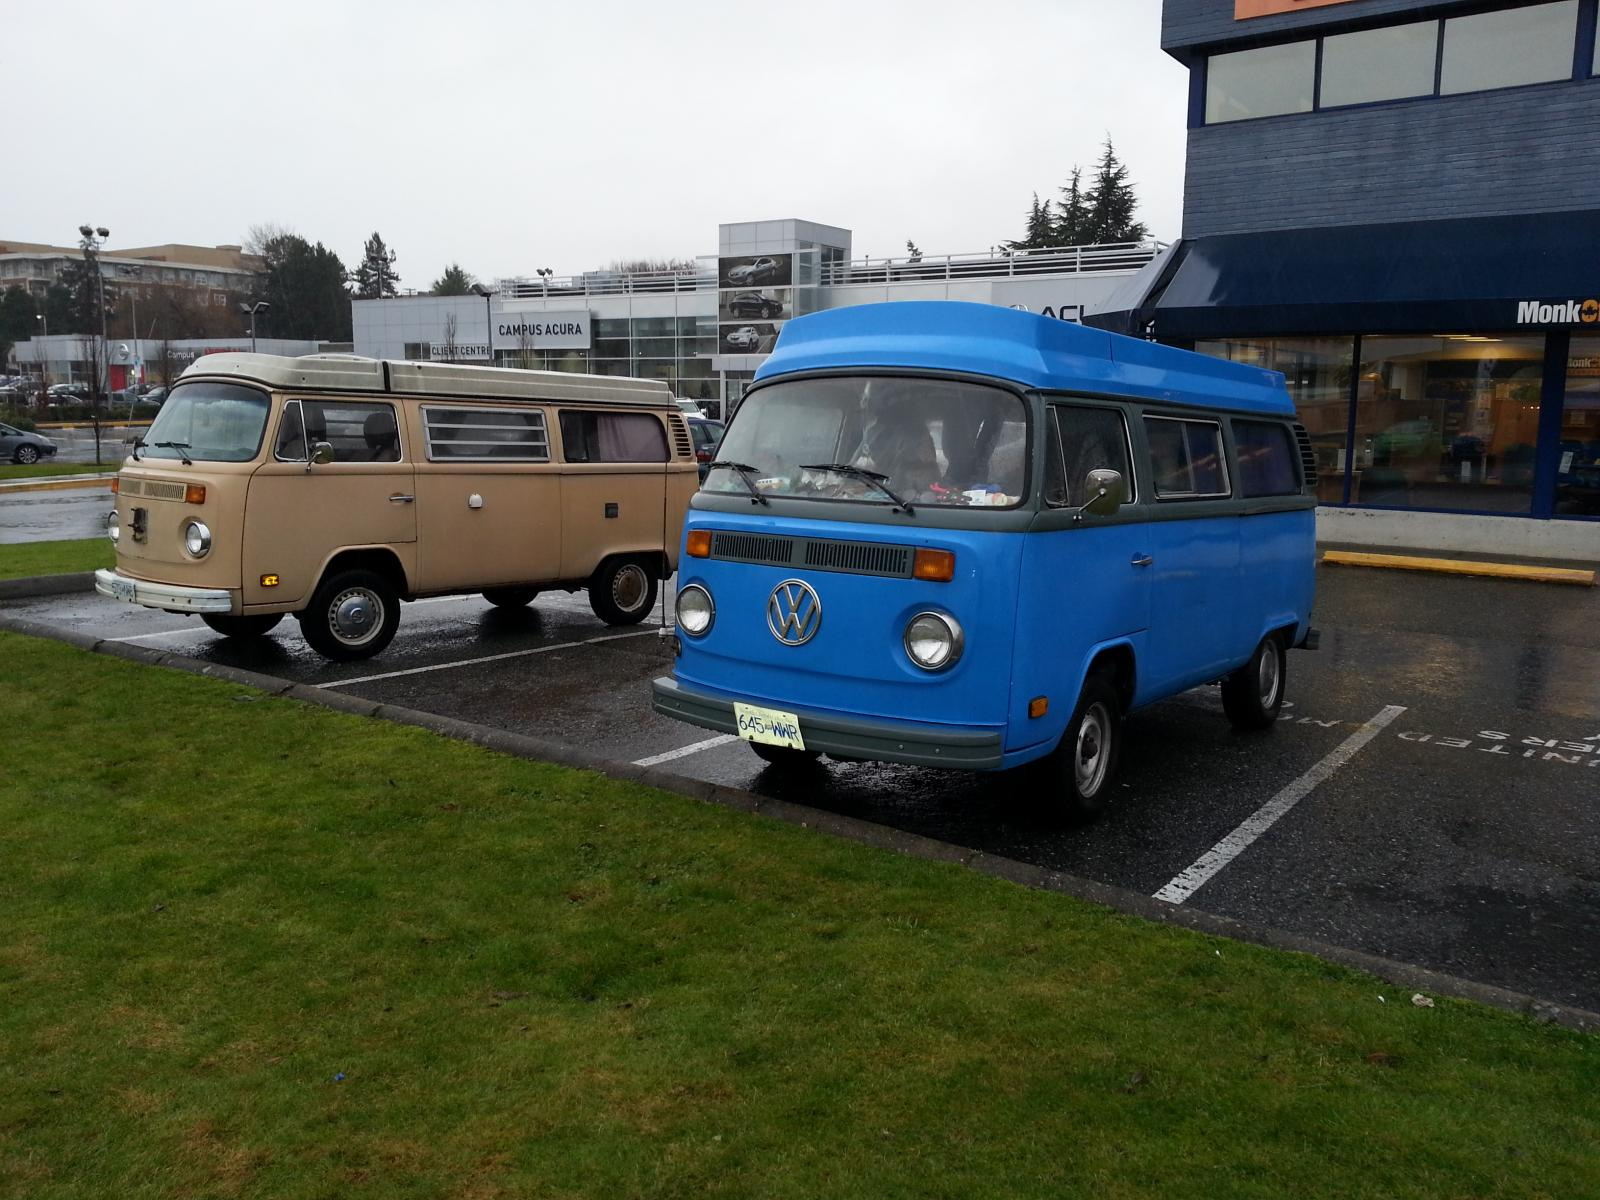 My old bus (blue)